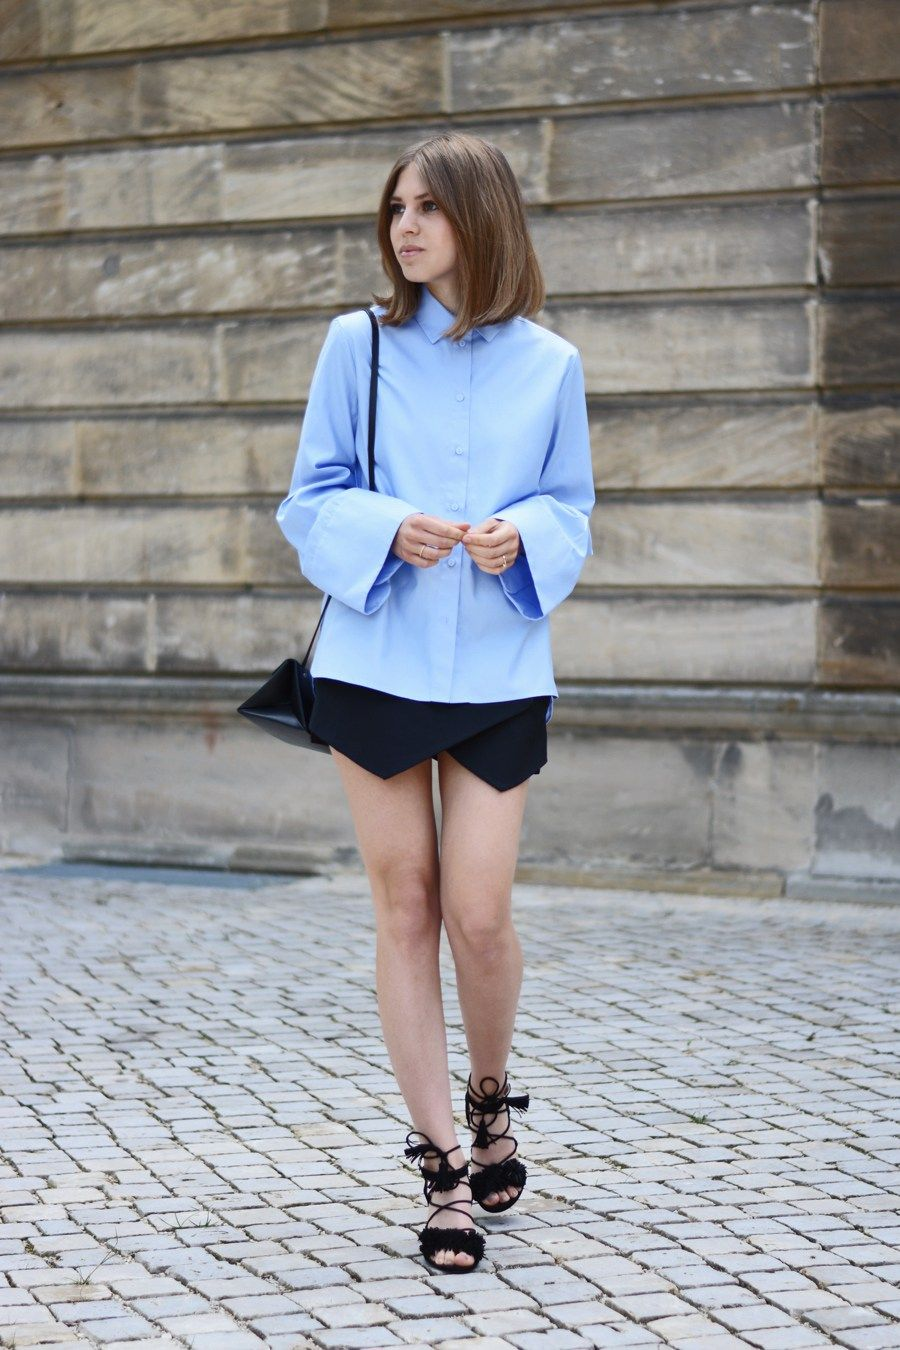 More on www.offwhiteswan.com Flared Sleeves Shirt by H&M Trend, Skorts by Zara, Triangle Bag by COS, Lace Up Sandals by Zara #offwhiteswan #swantjesoemmer